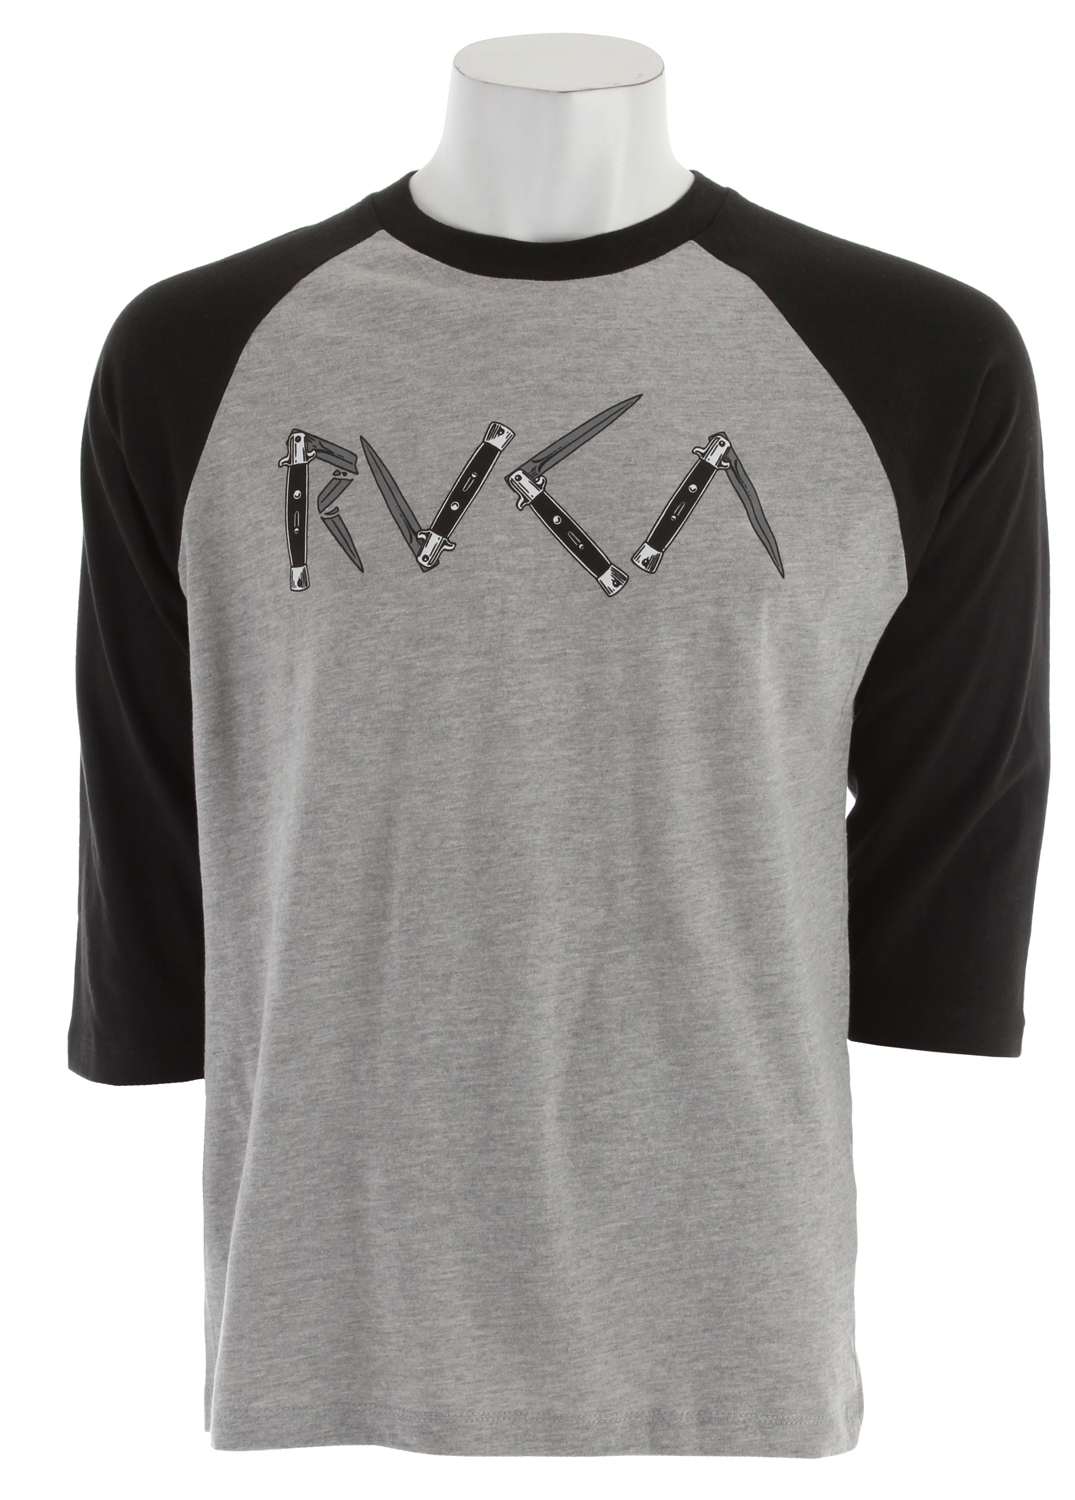 Sports Key Features of The RVCA Switchblade Raglan Shirt Athletic Heather/Black: Regular Fit Crew Neck Raglan 30/1 100% cotton 3/4 baseball raglan Front screenprint and screened inside neck - $23.95